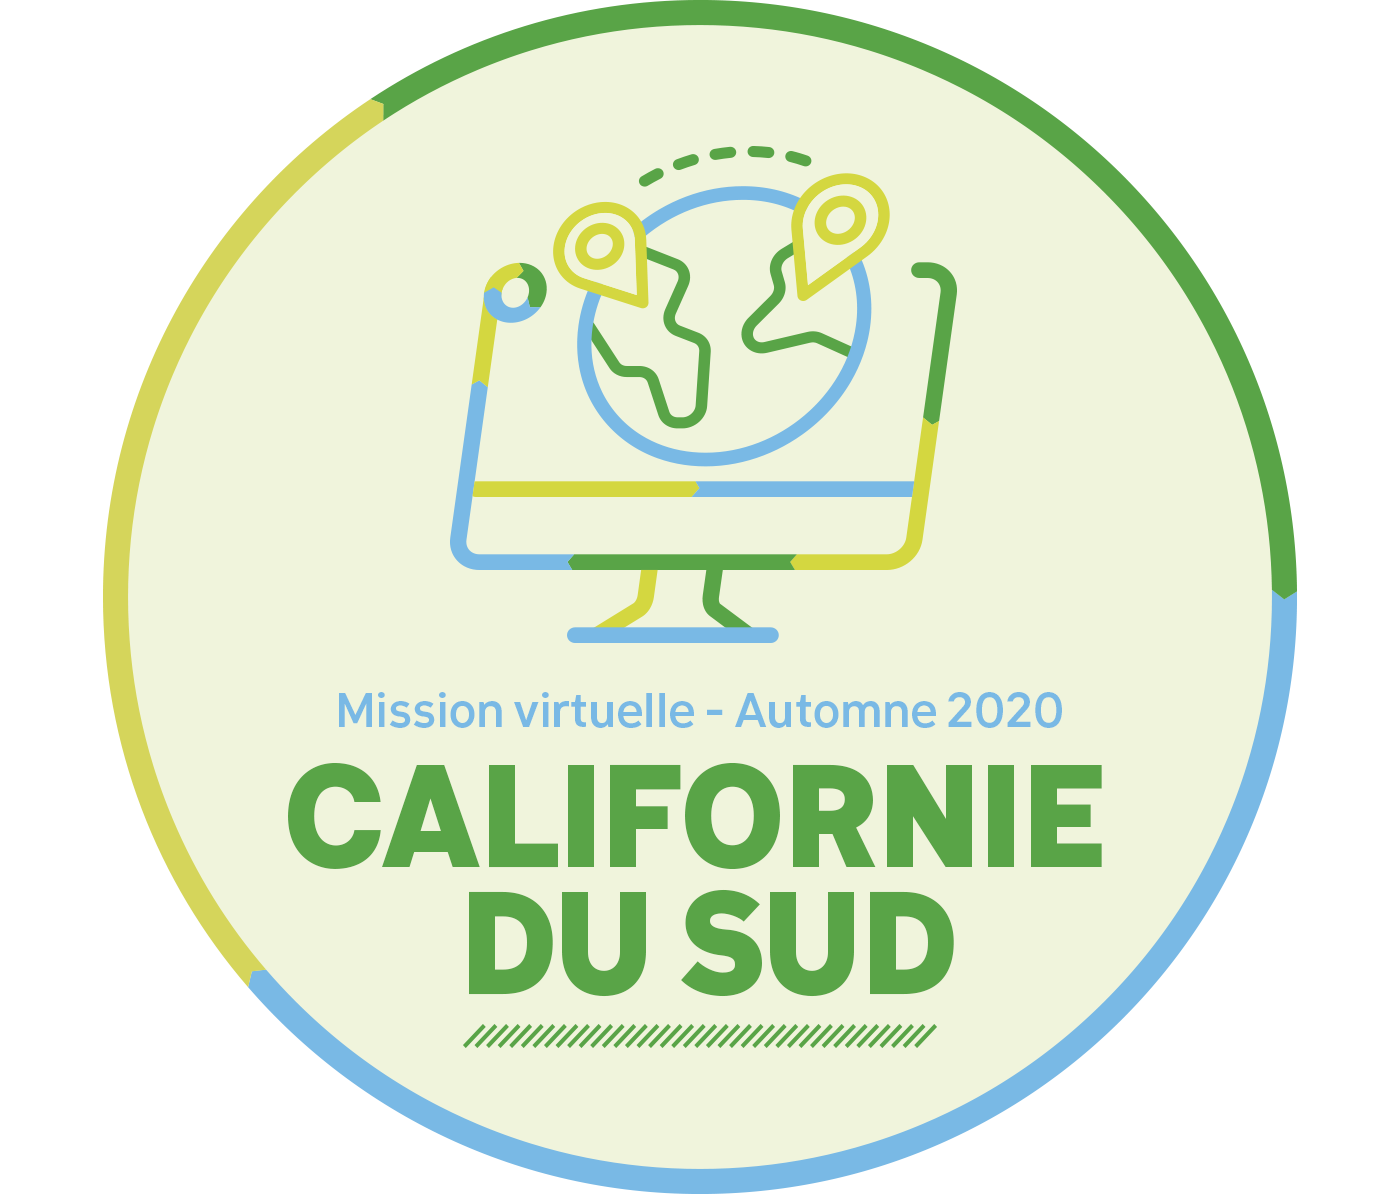 NOUVELLE MISSION VIRTUELLE À VENIR - CALIFORNIE DU SUD